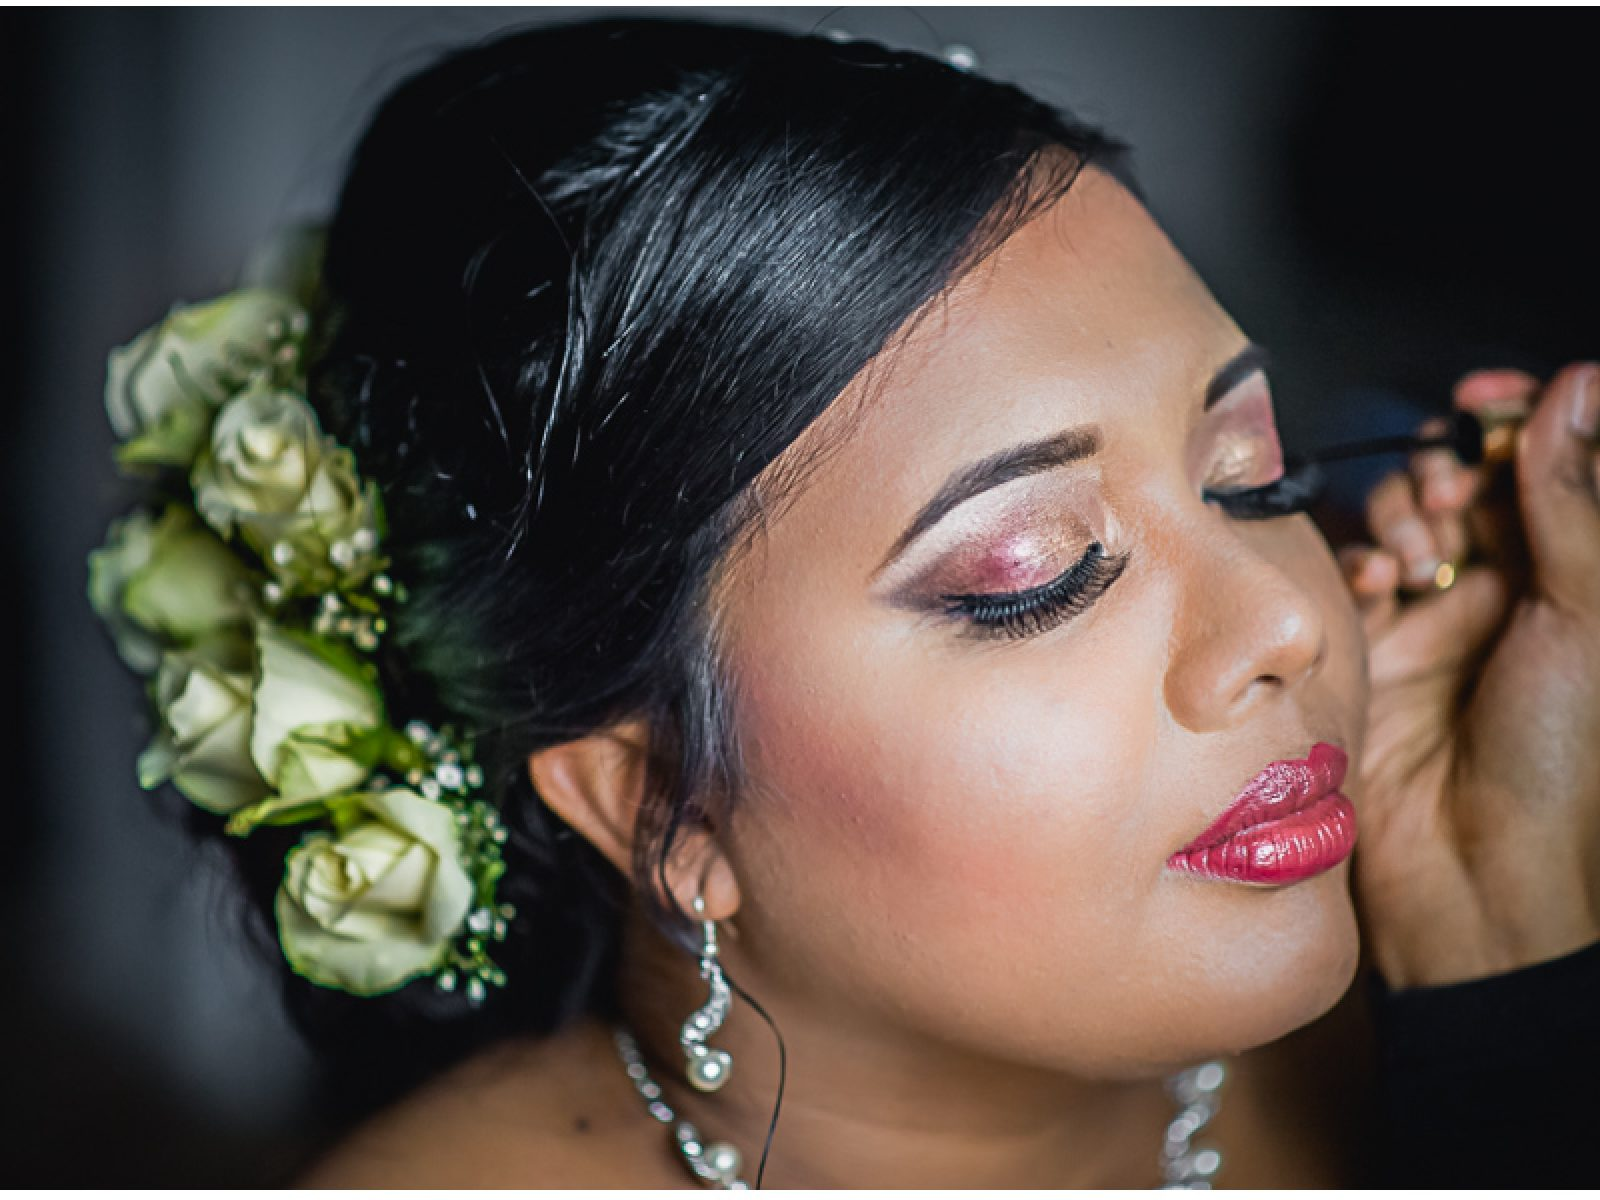 91 1600x1200 - Darshani and Anthony - wedding photographer in London